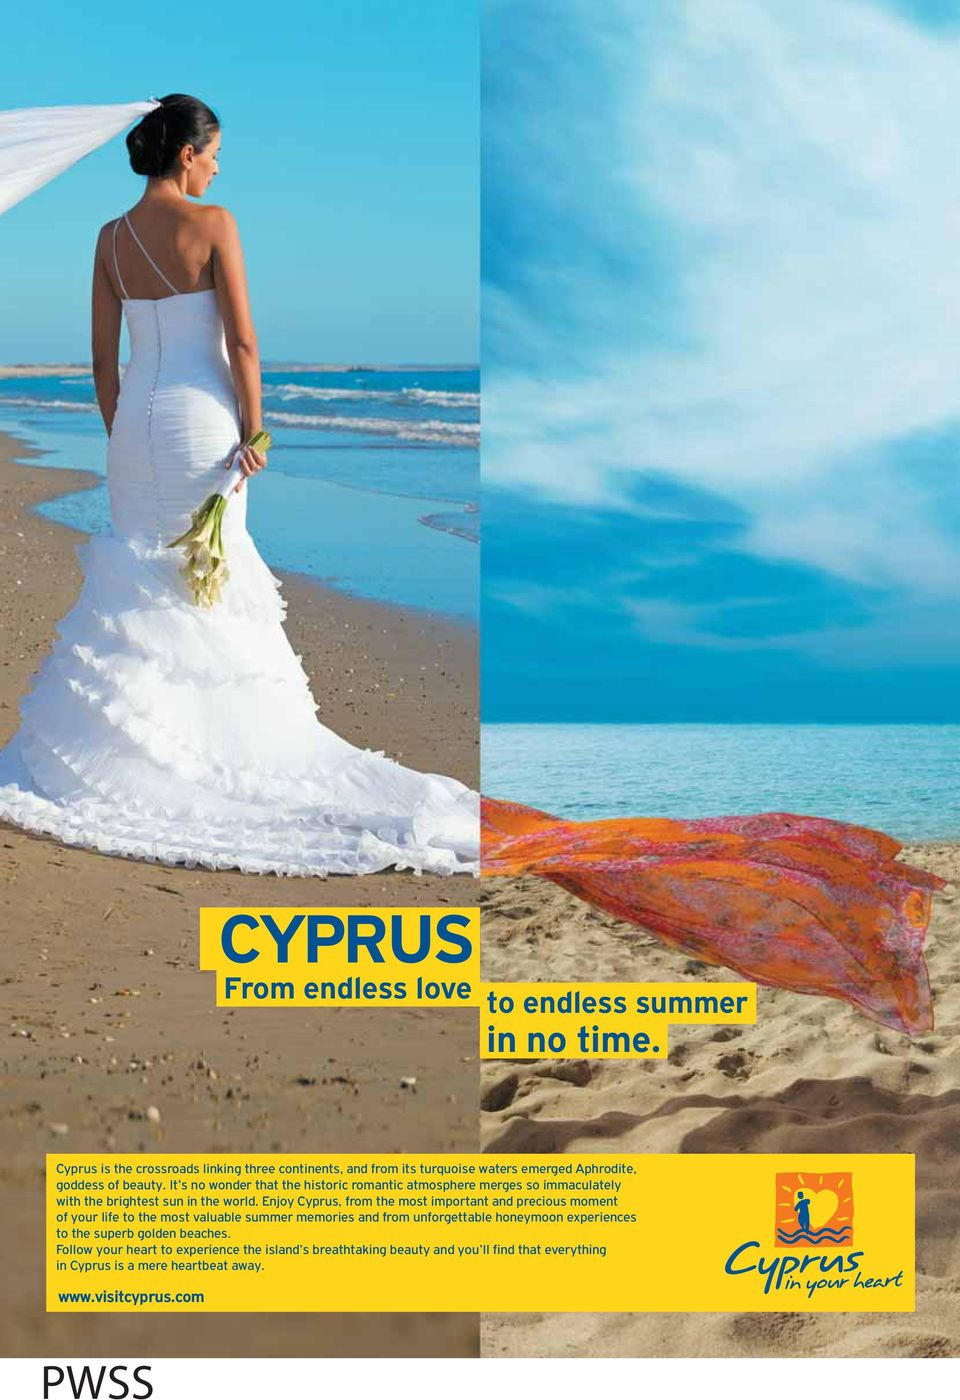 Enjoy Cyprus, from the most important and precious moment of your life to the most valuable summer memories and from unforgettable honeymoon